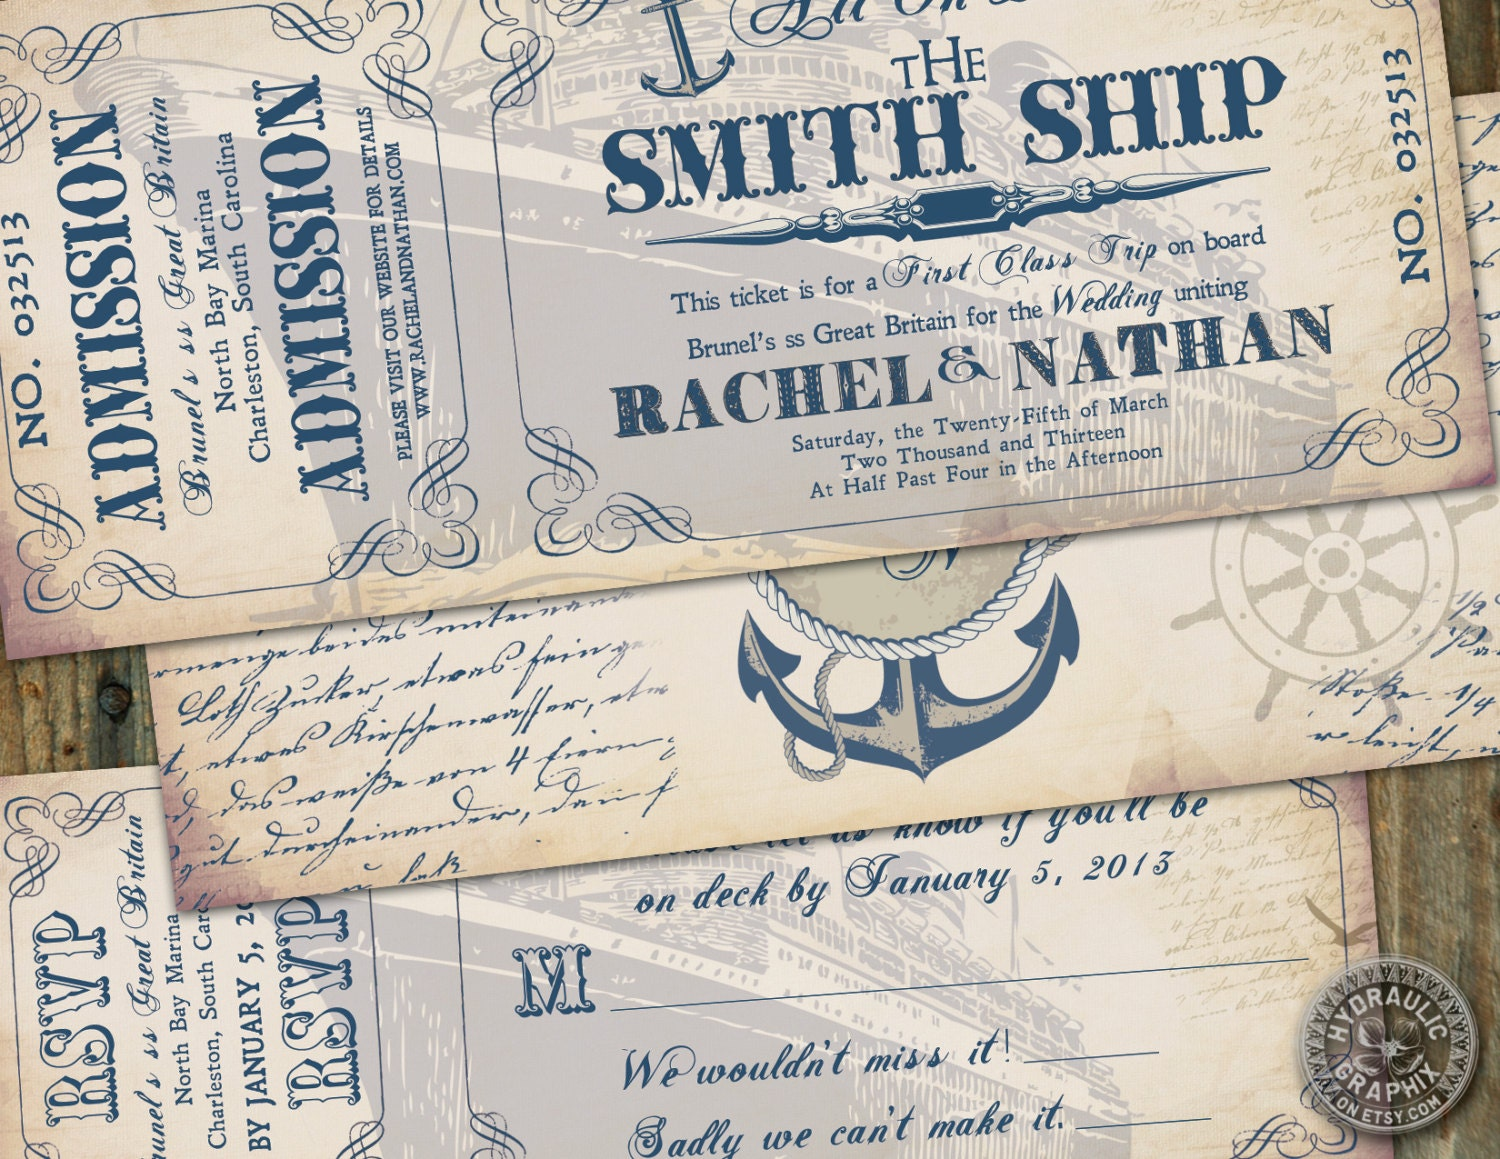 Cruise Wedding Invitations: Cruise Ship Ticket Invitation And RSVP By HydraulicGraphix